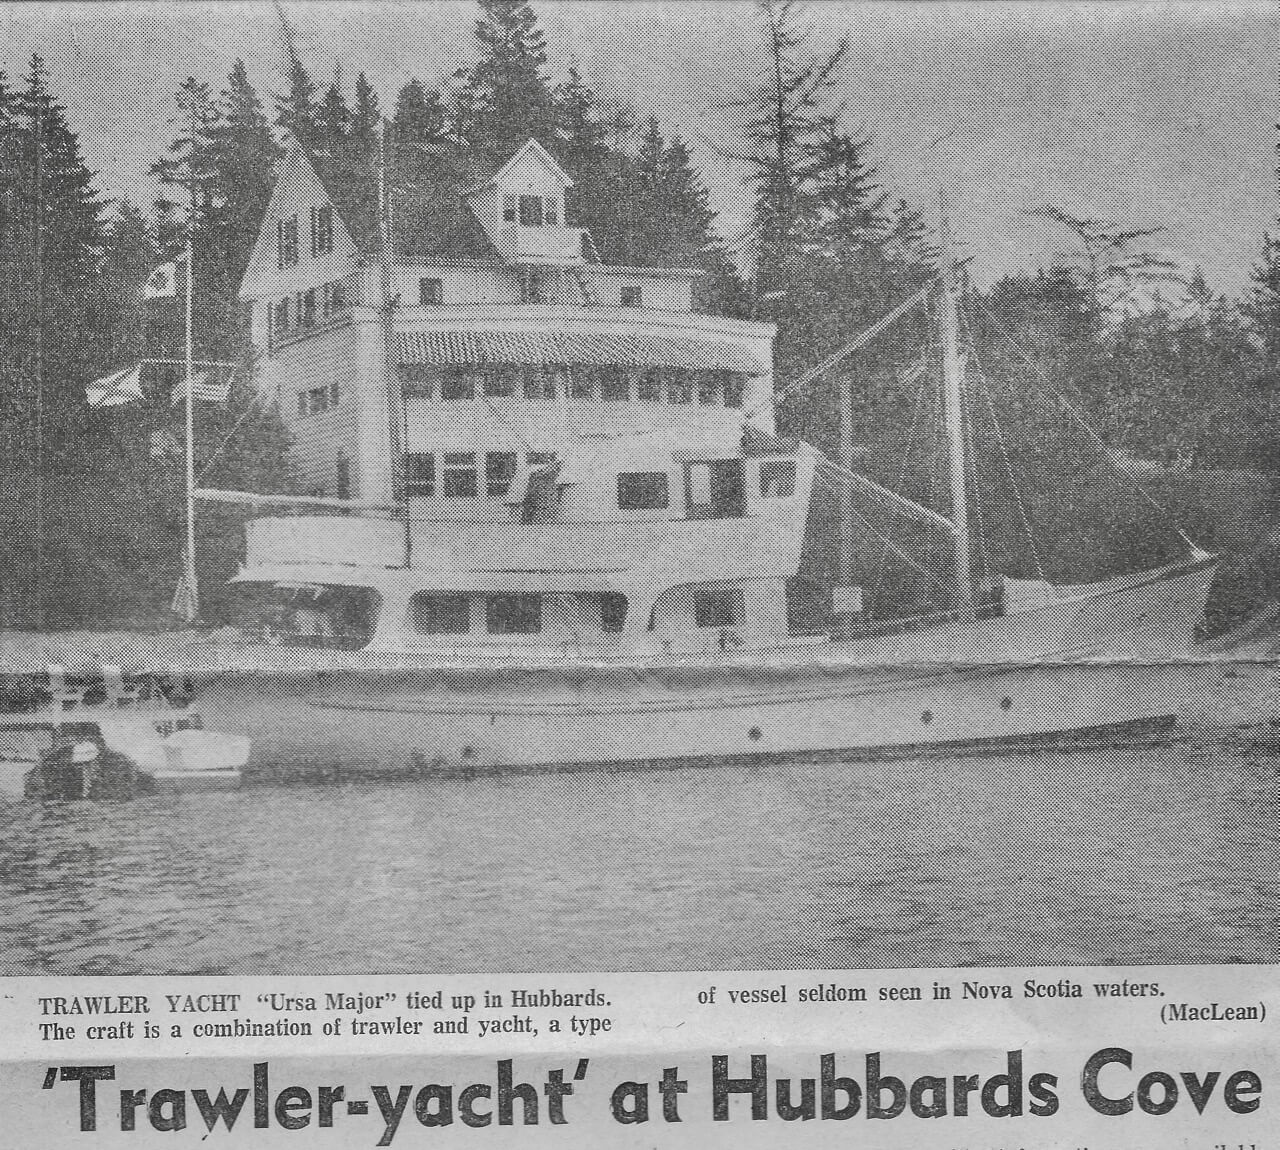 The Ursa Major in Hubbards Cove, Nova Scotia, 1973